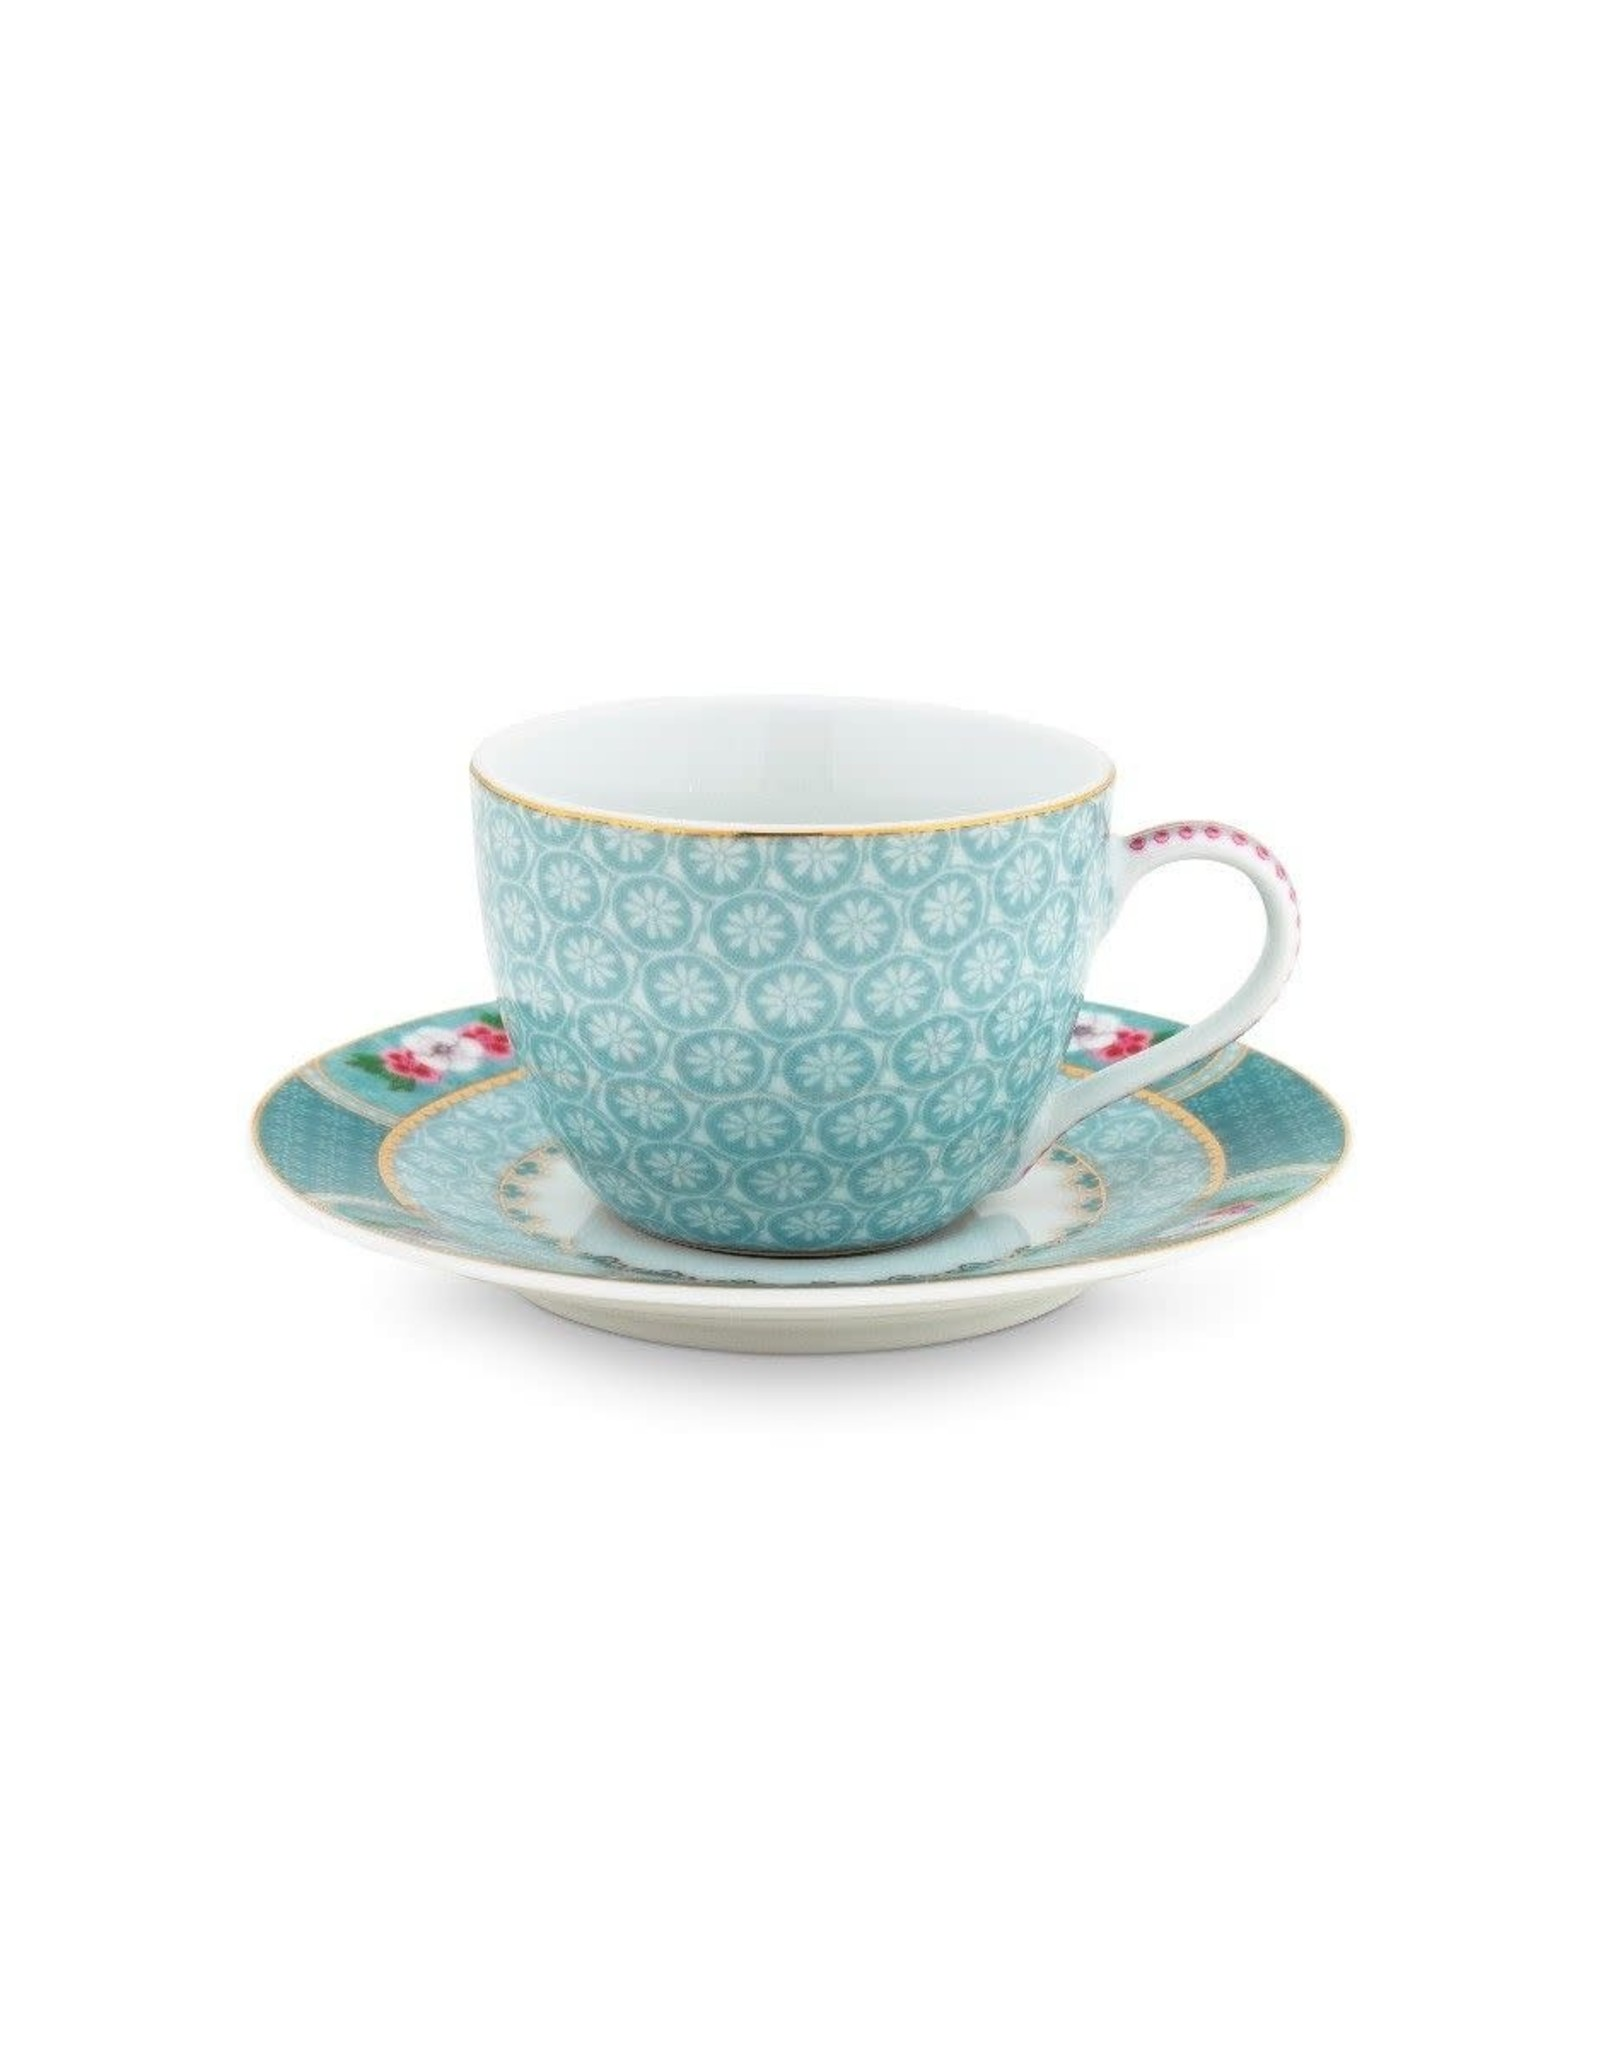 pip-studio Espresso Cup & Saucer Blushing Birds Blue 120ml